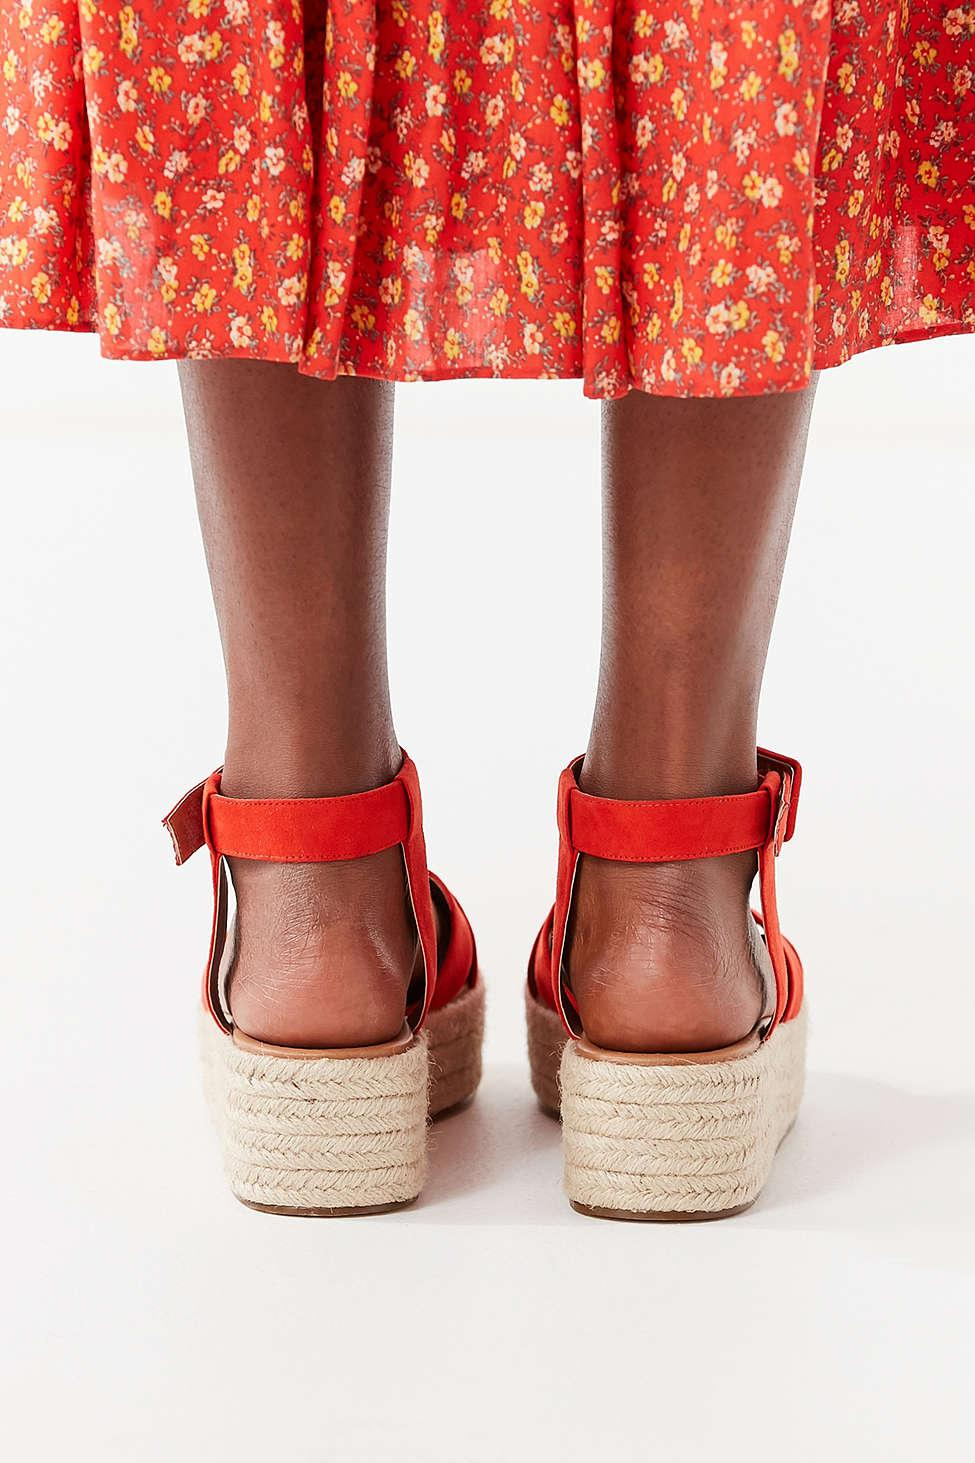 cebfe34525b Lyst - Urban Outfitters Cora Flatform Espadrille Sandal in Red